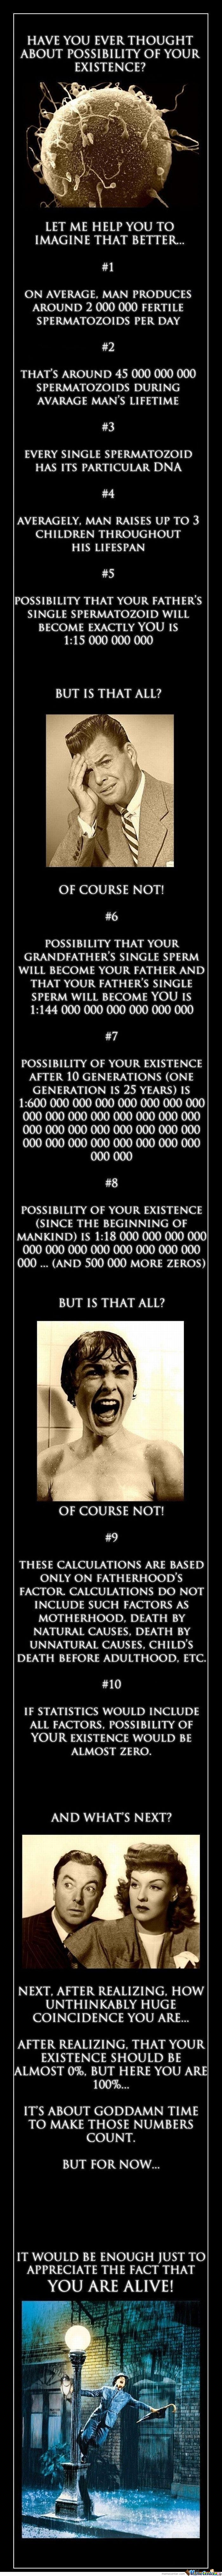 Have you ever thought about possibility of your existence?